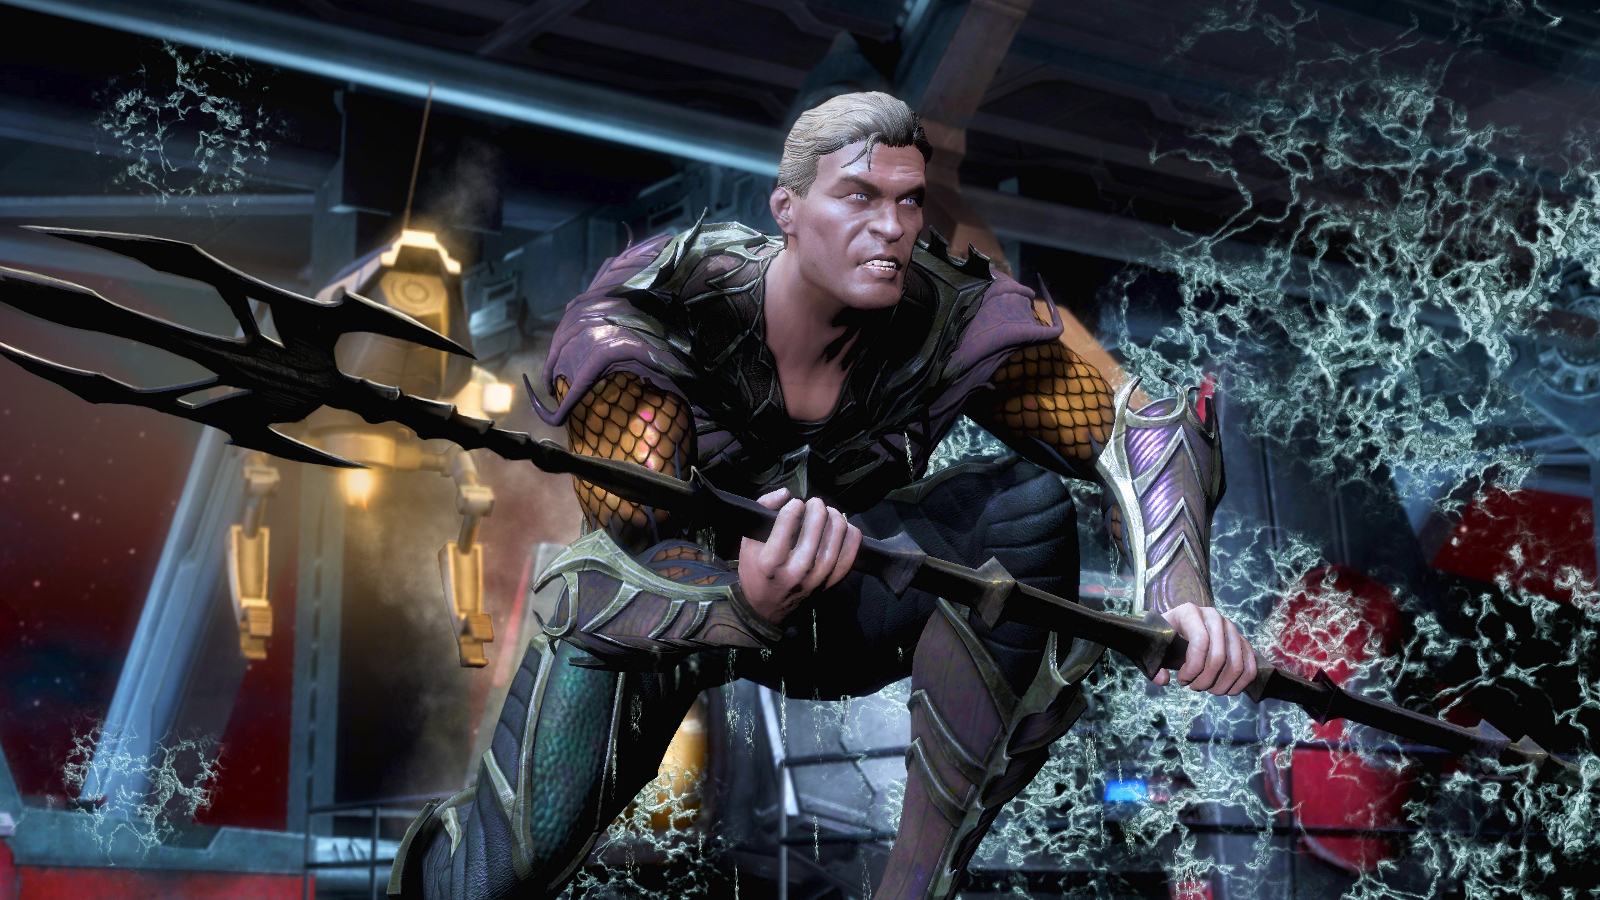 Injustice - Aquaman